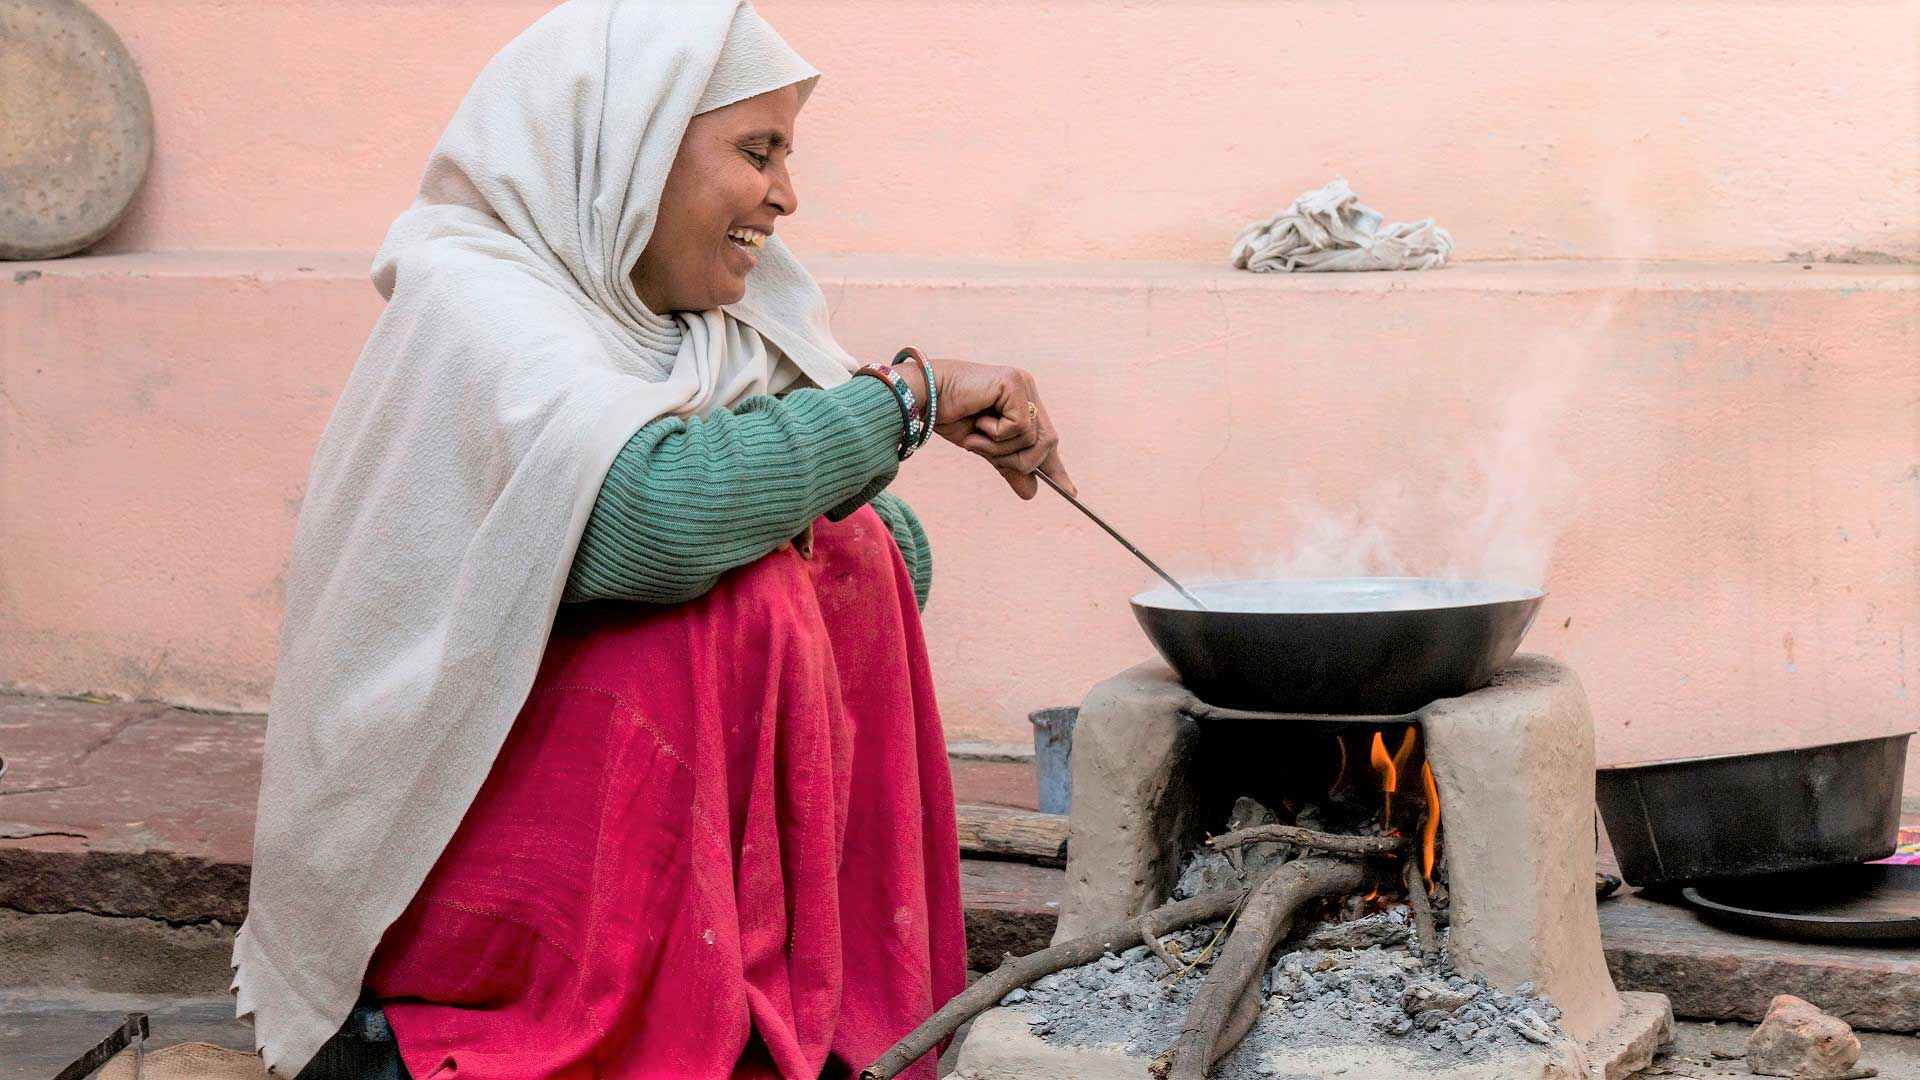 Woman joyfully cooking in Fatehpur Sikri village of Rajasthan, India with GeoEx